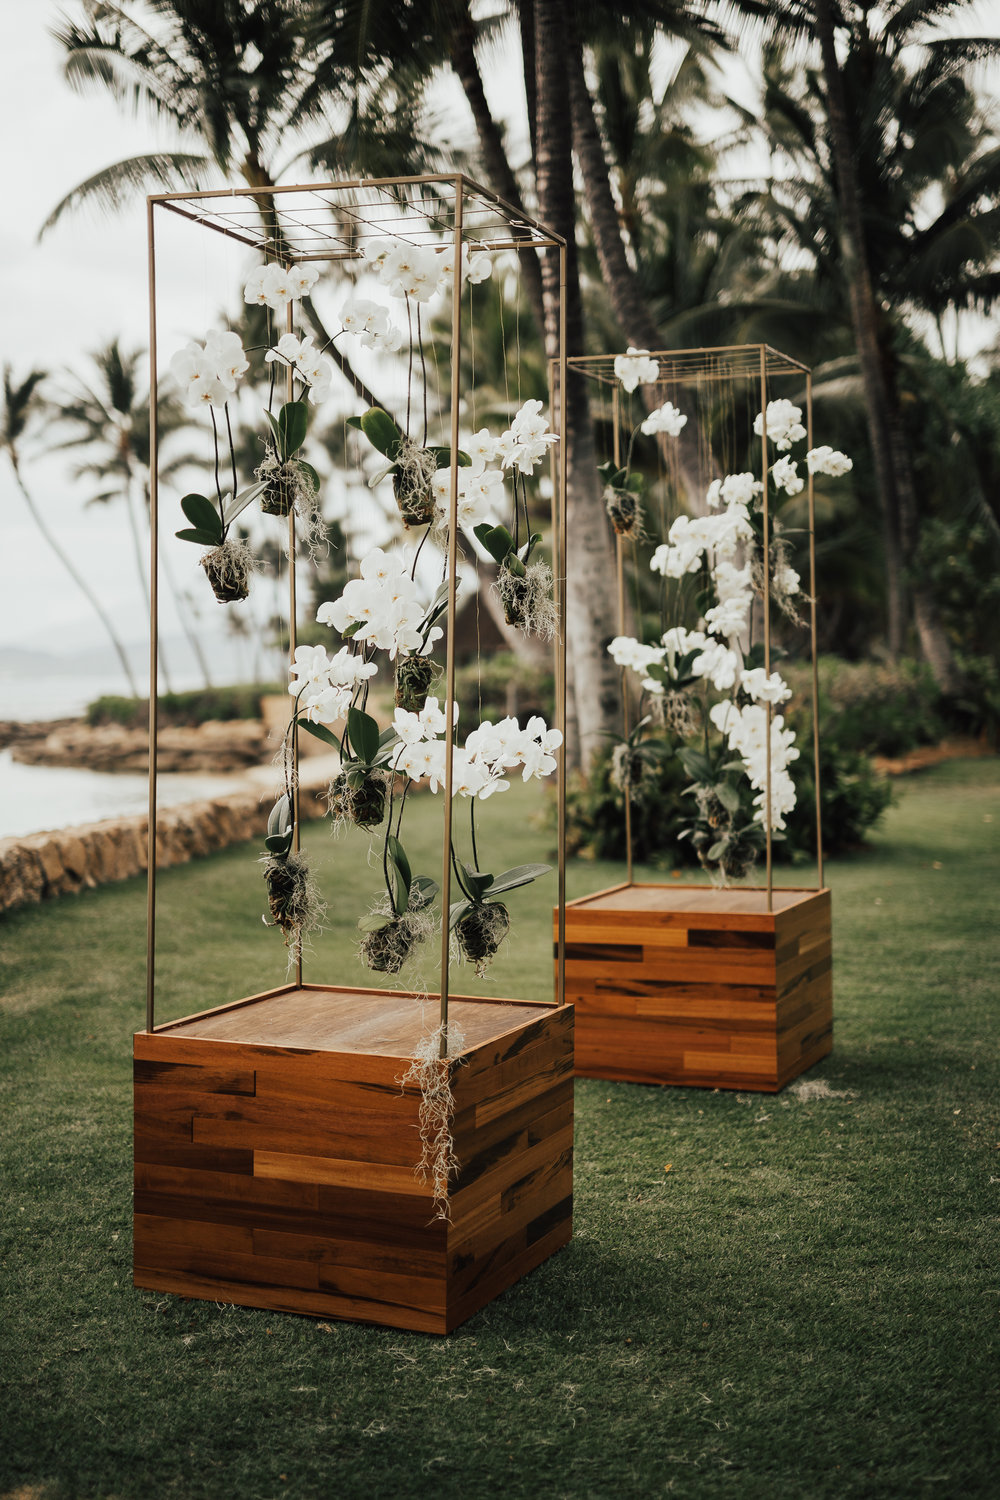 Our modern towers can be reinvented in a myriad of ways—with hanging orchids, flower lei or a crystal chandelier. Perfect for a unique wedding ceremony or flanking a tent entrance. $500 for a set of 2 towers.